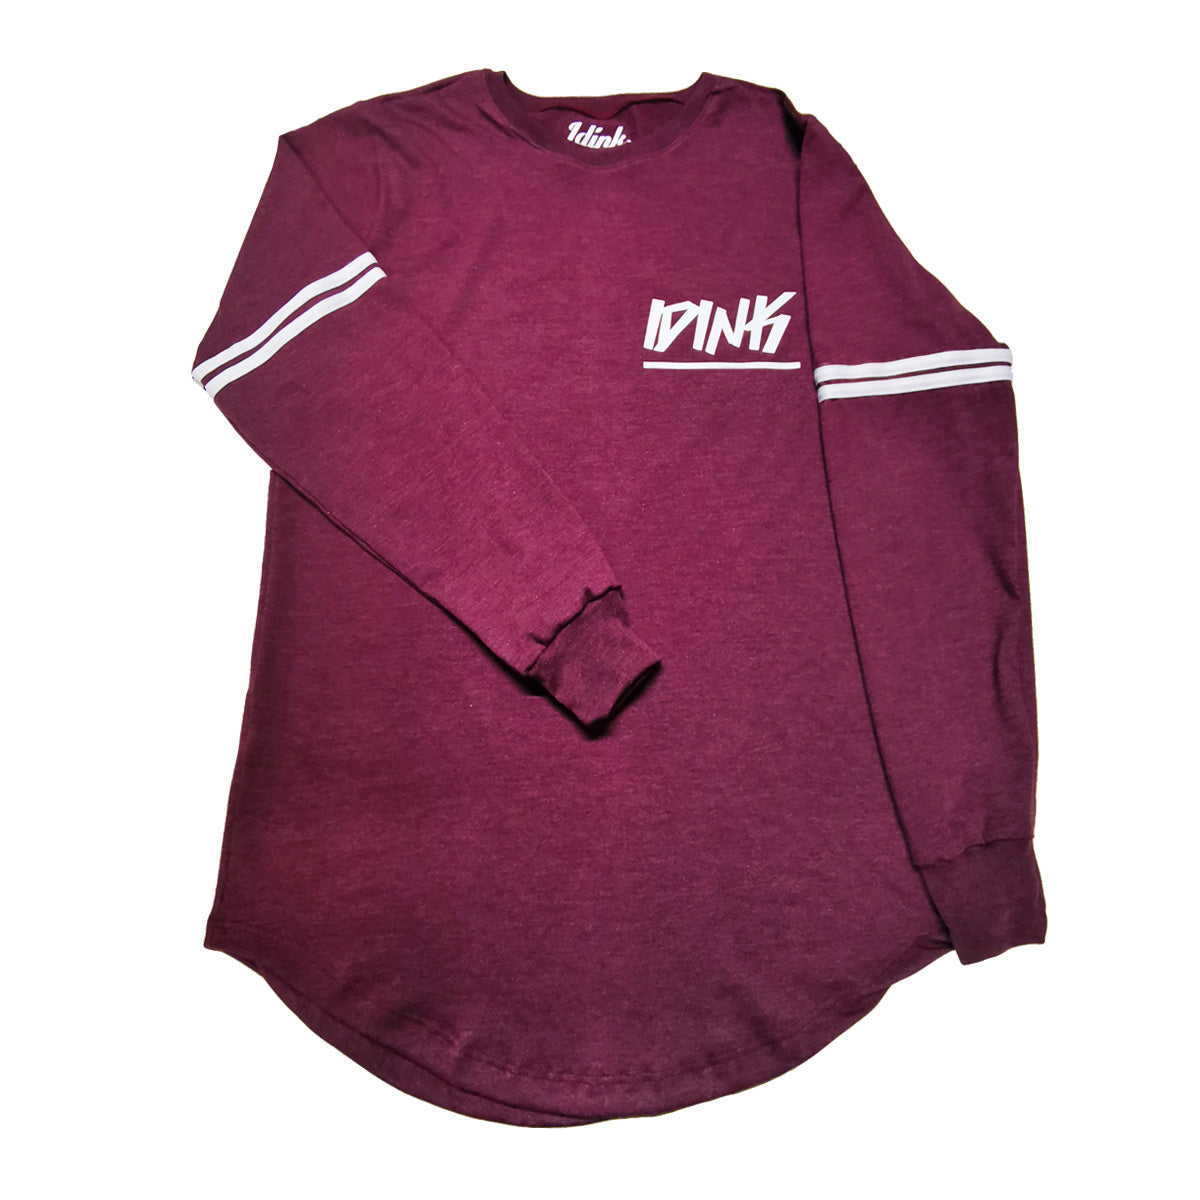 Playera Idink Long Fit Manga Larga Franjas